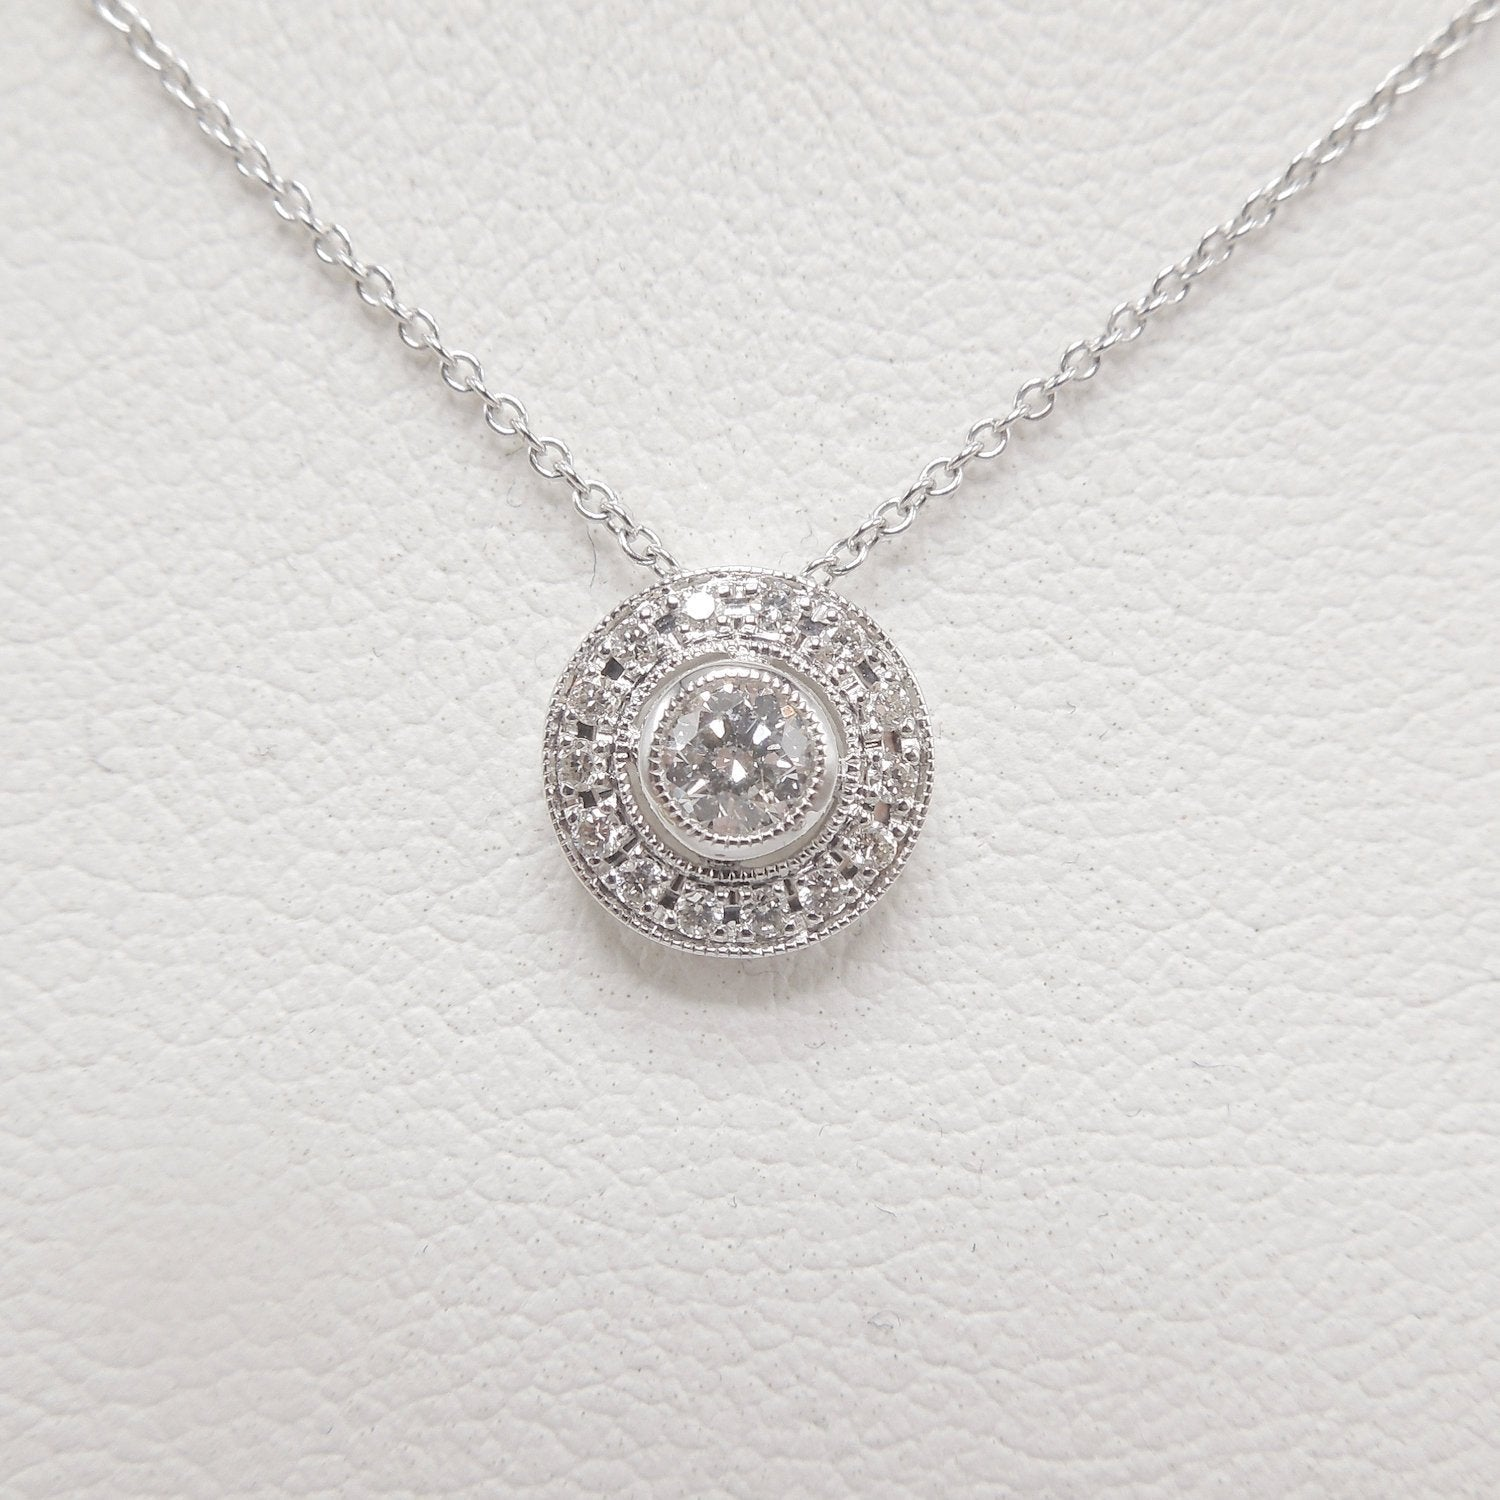 Art Deco Style Diamond and Diamond Halo Necklace and Pendant